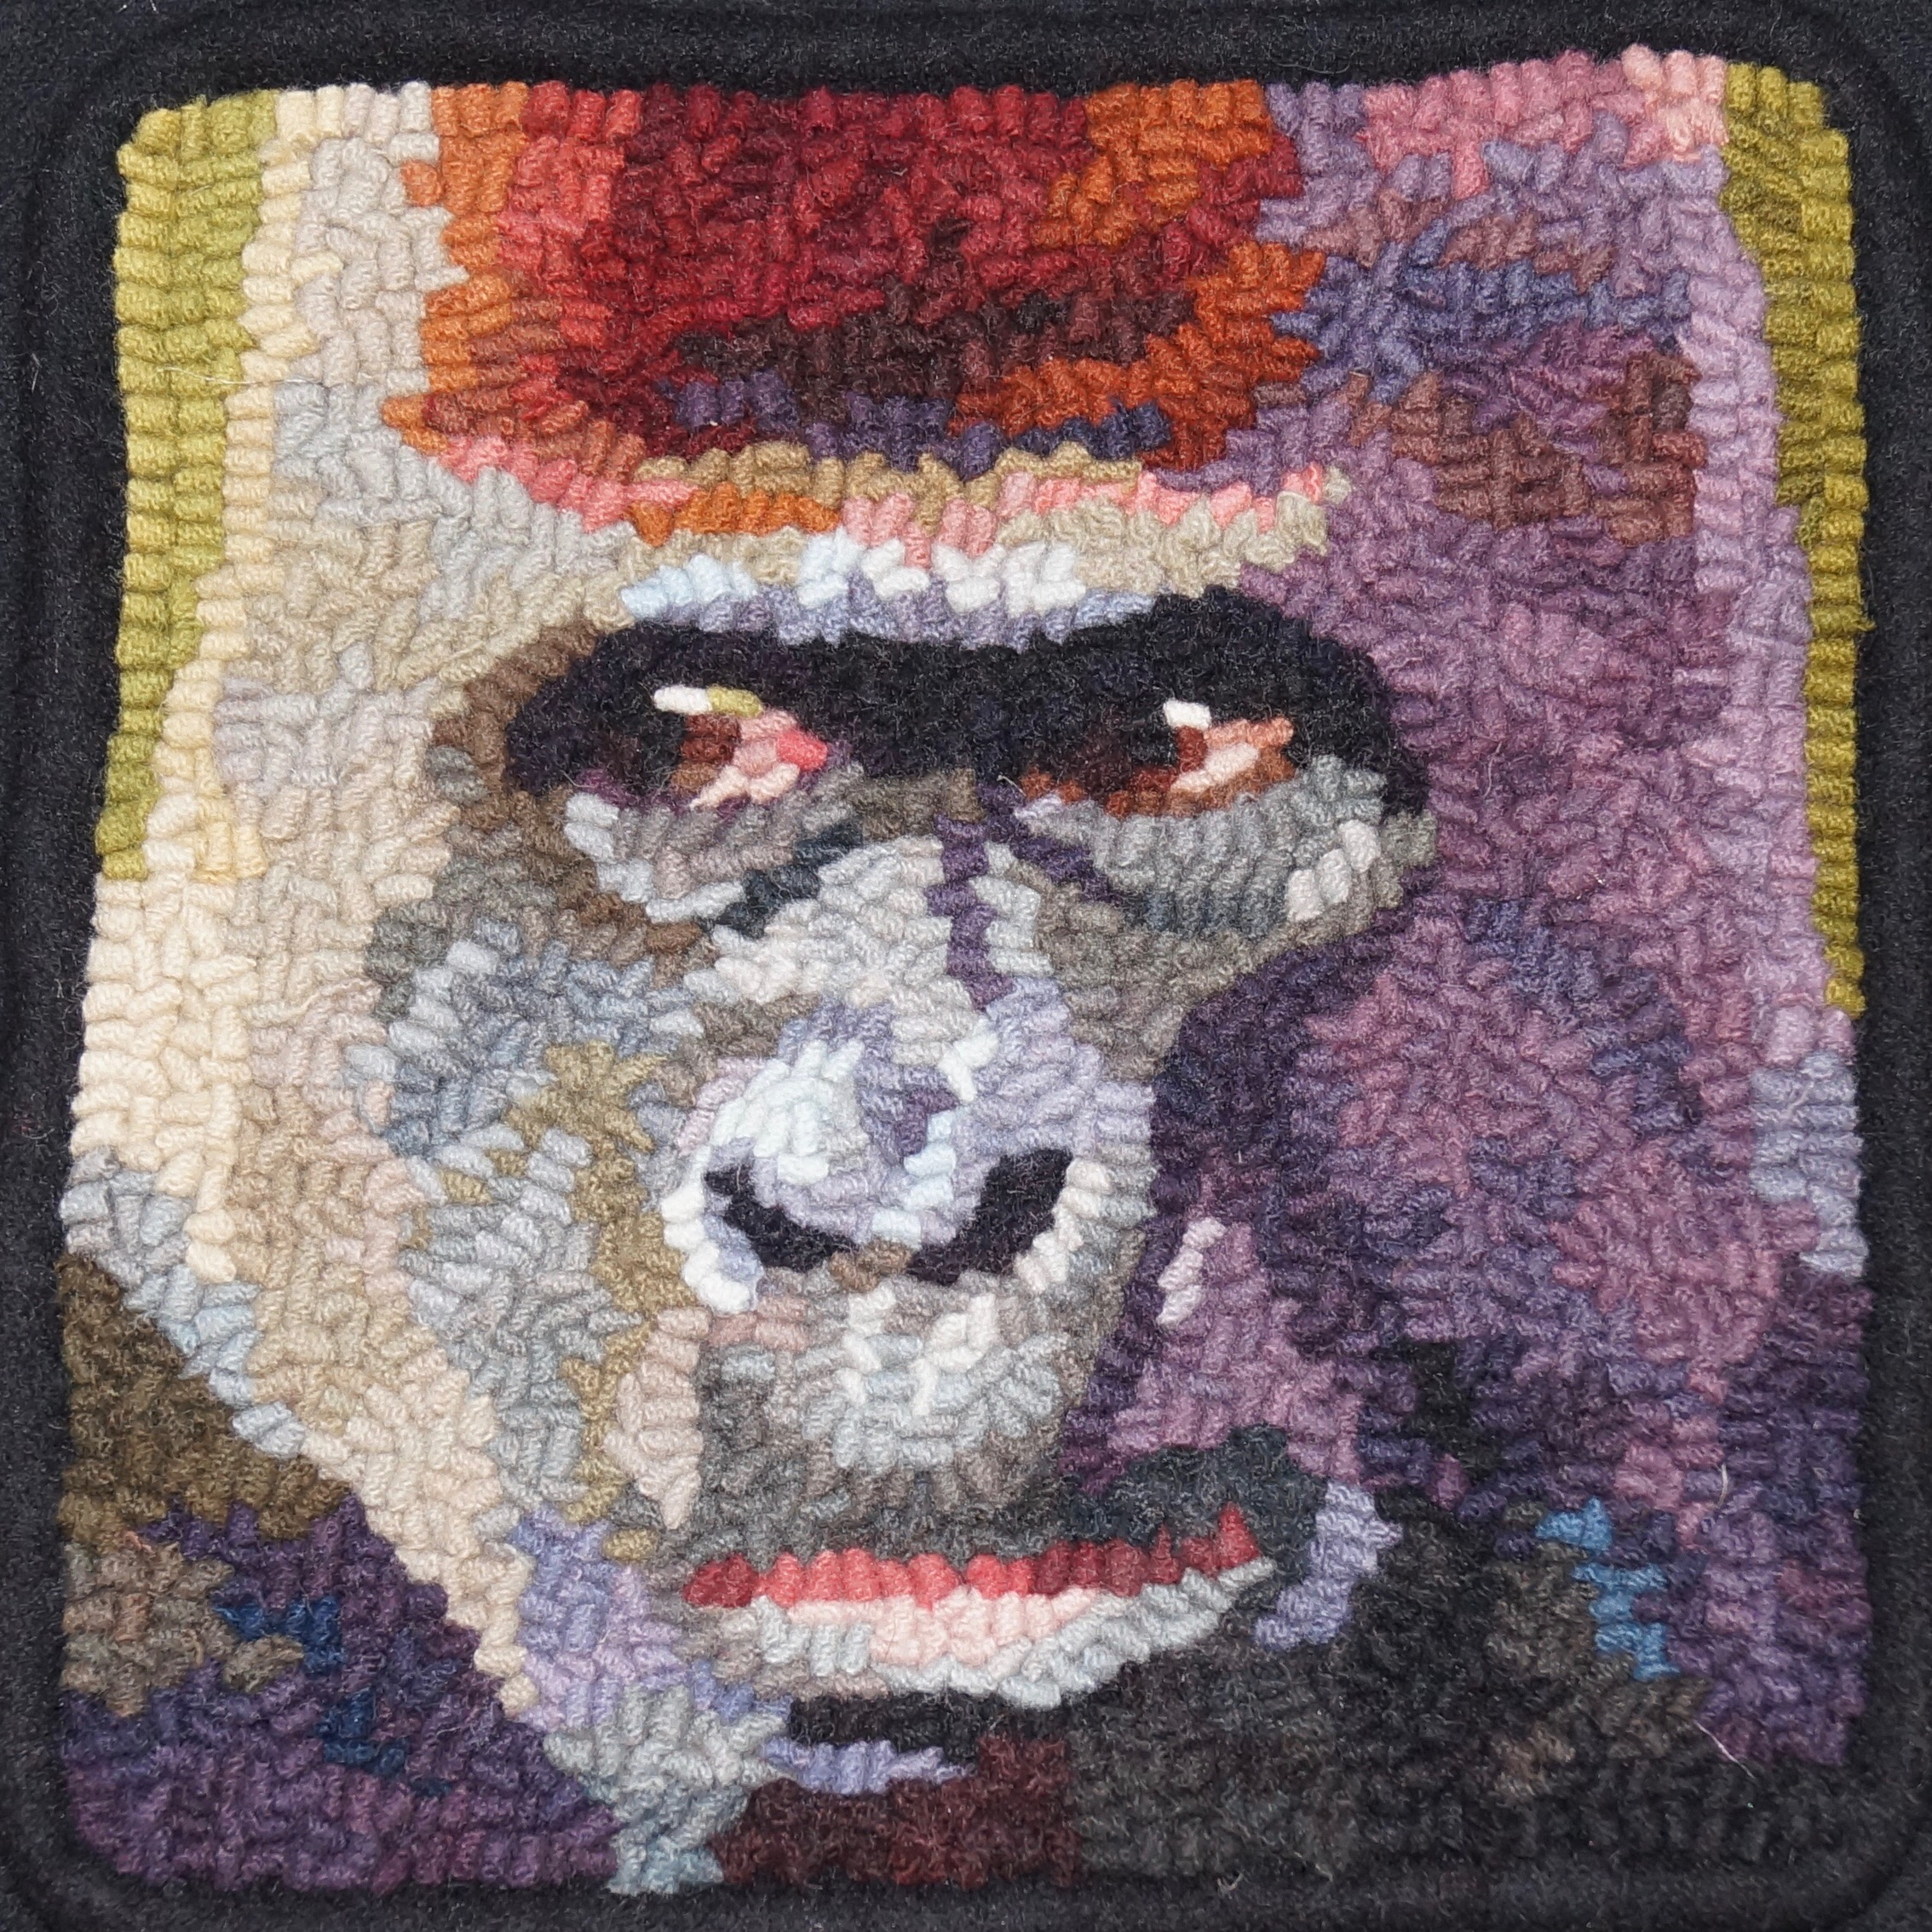 Gorilla 2019. 6-cut wool on linen. Designed, Dyed, and Hooked by April D. Deconick.